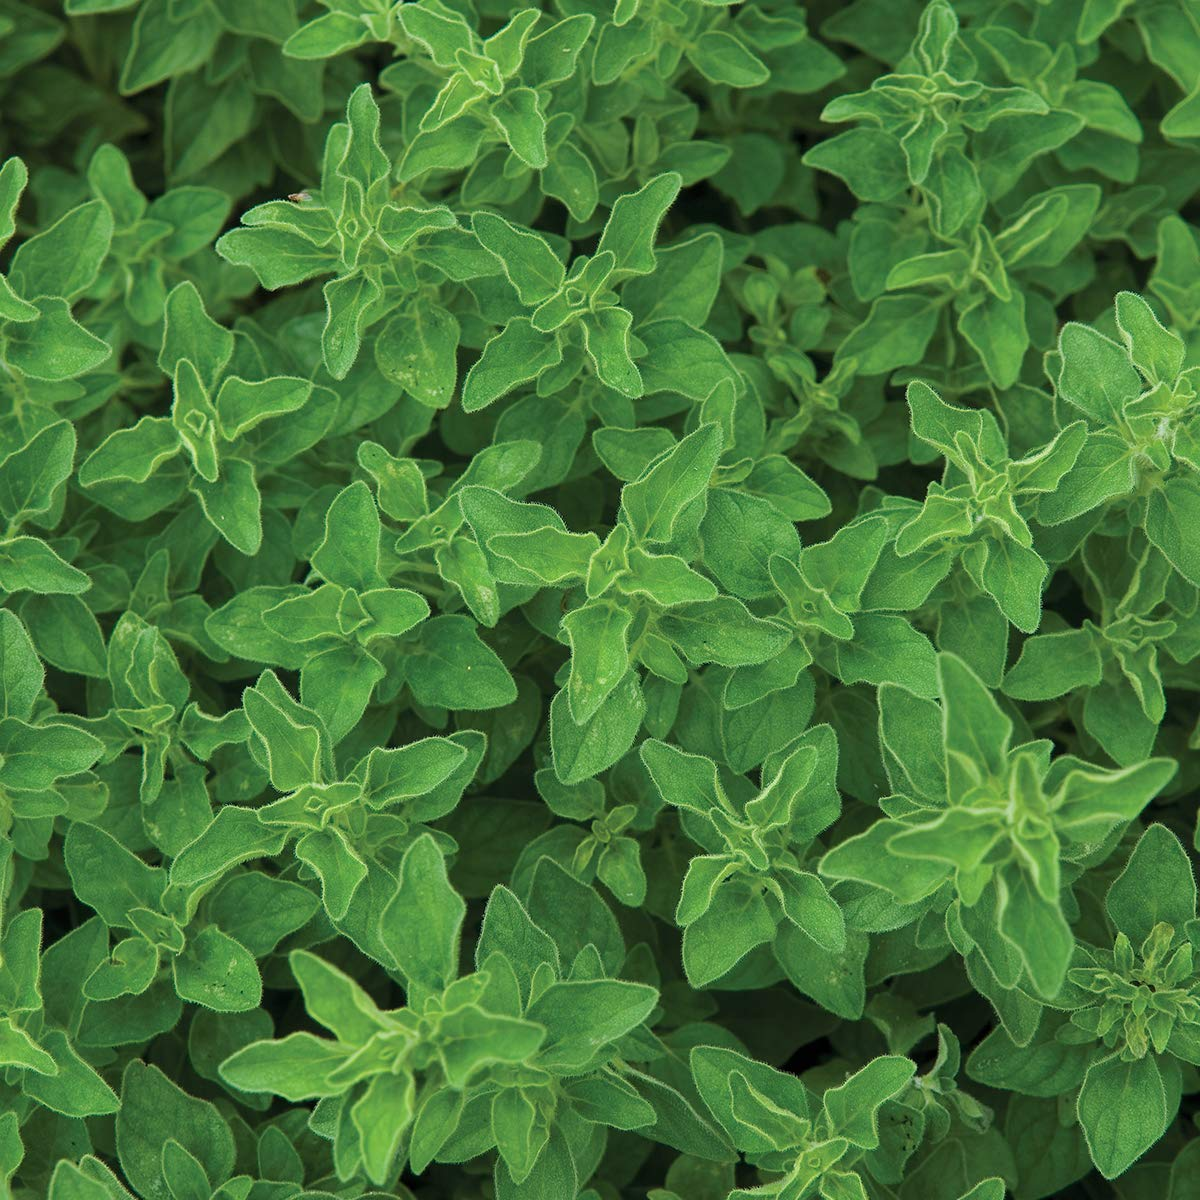 Burpee Greek' Oregano 3 Live Plants, 2 1/2'' Pot by Burpee (Image #1)